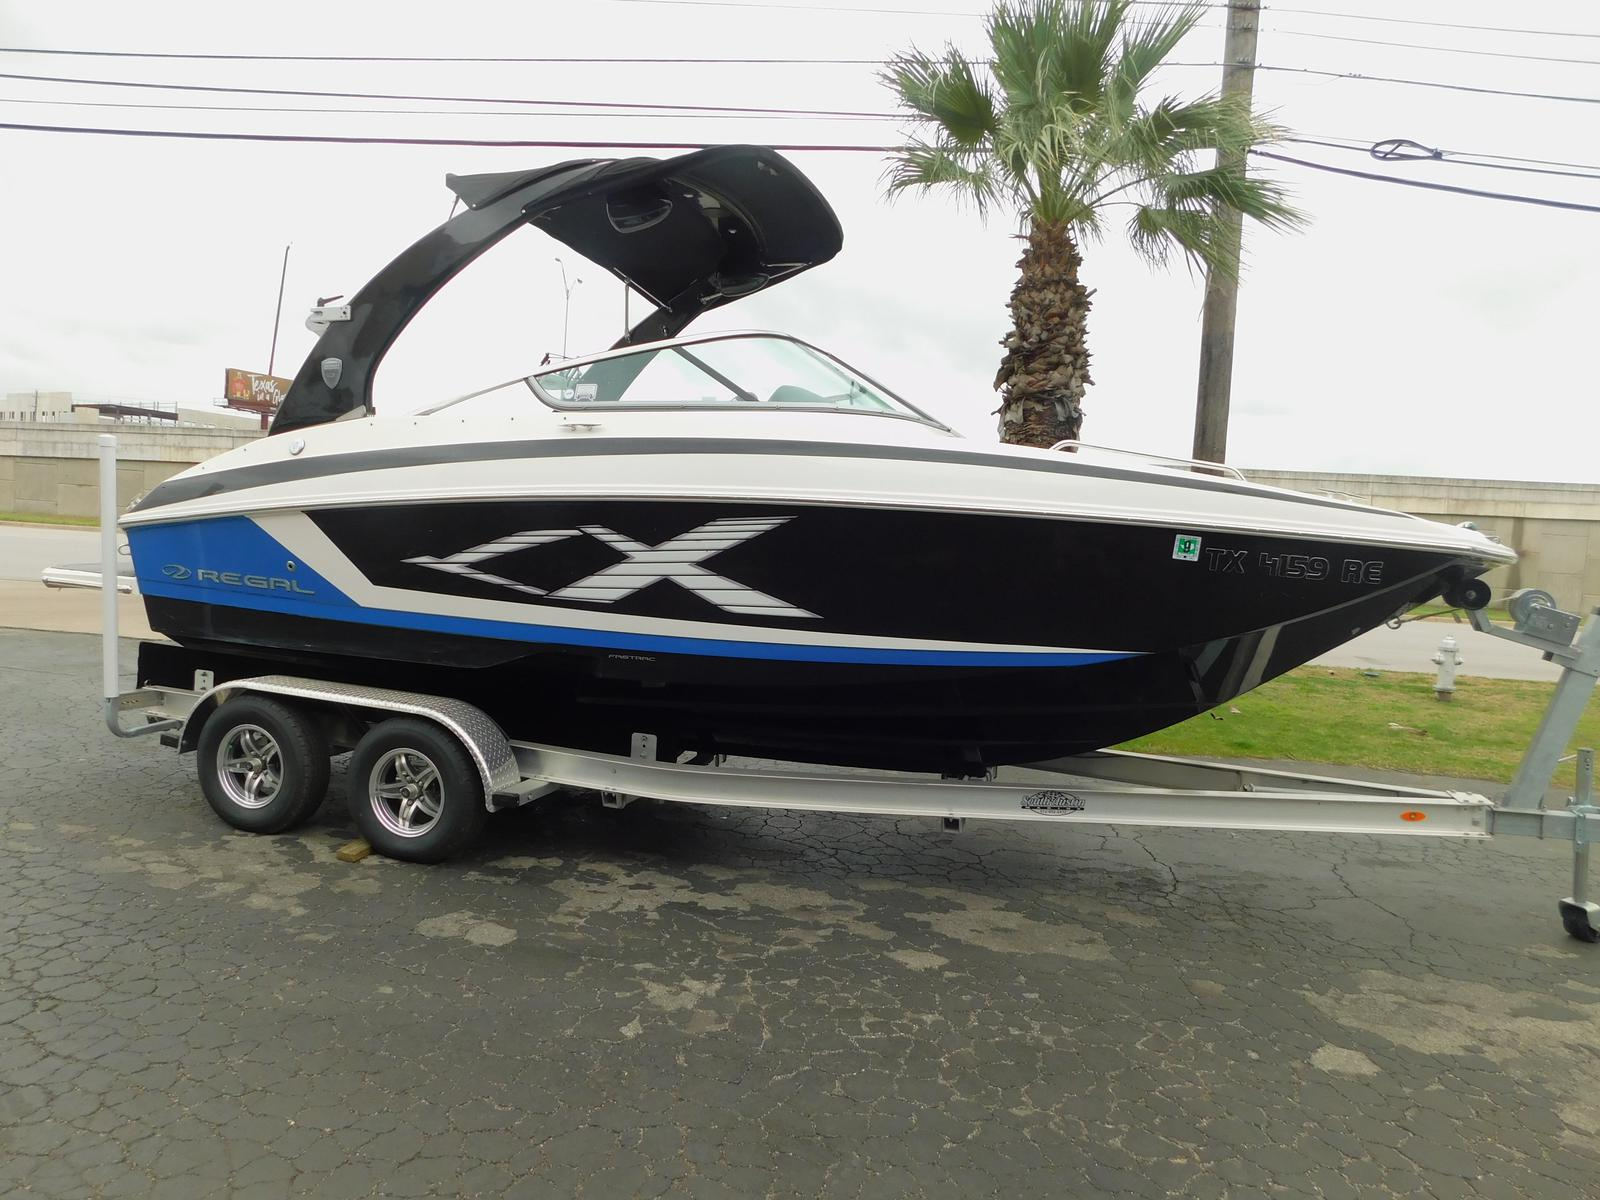 Regal 24 RX FASDECK